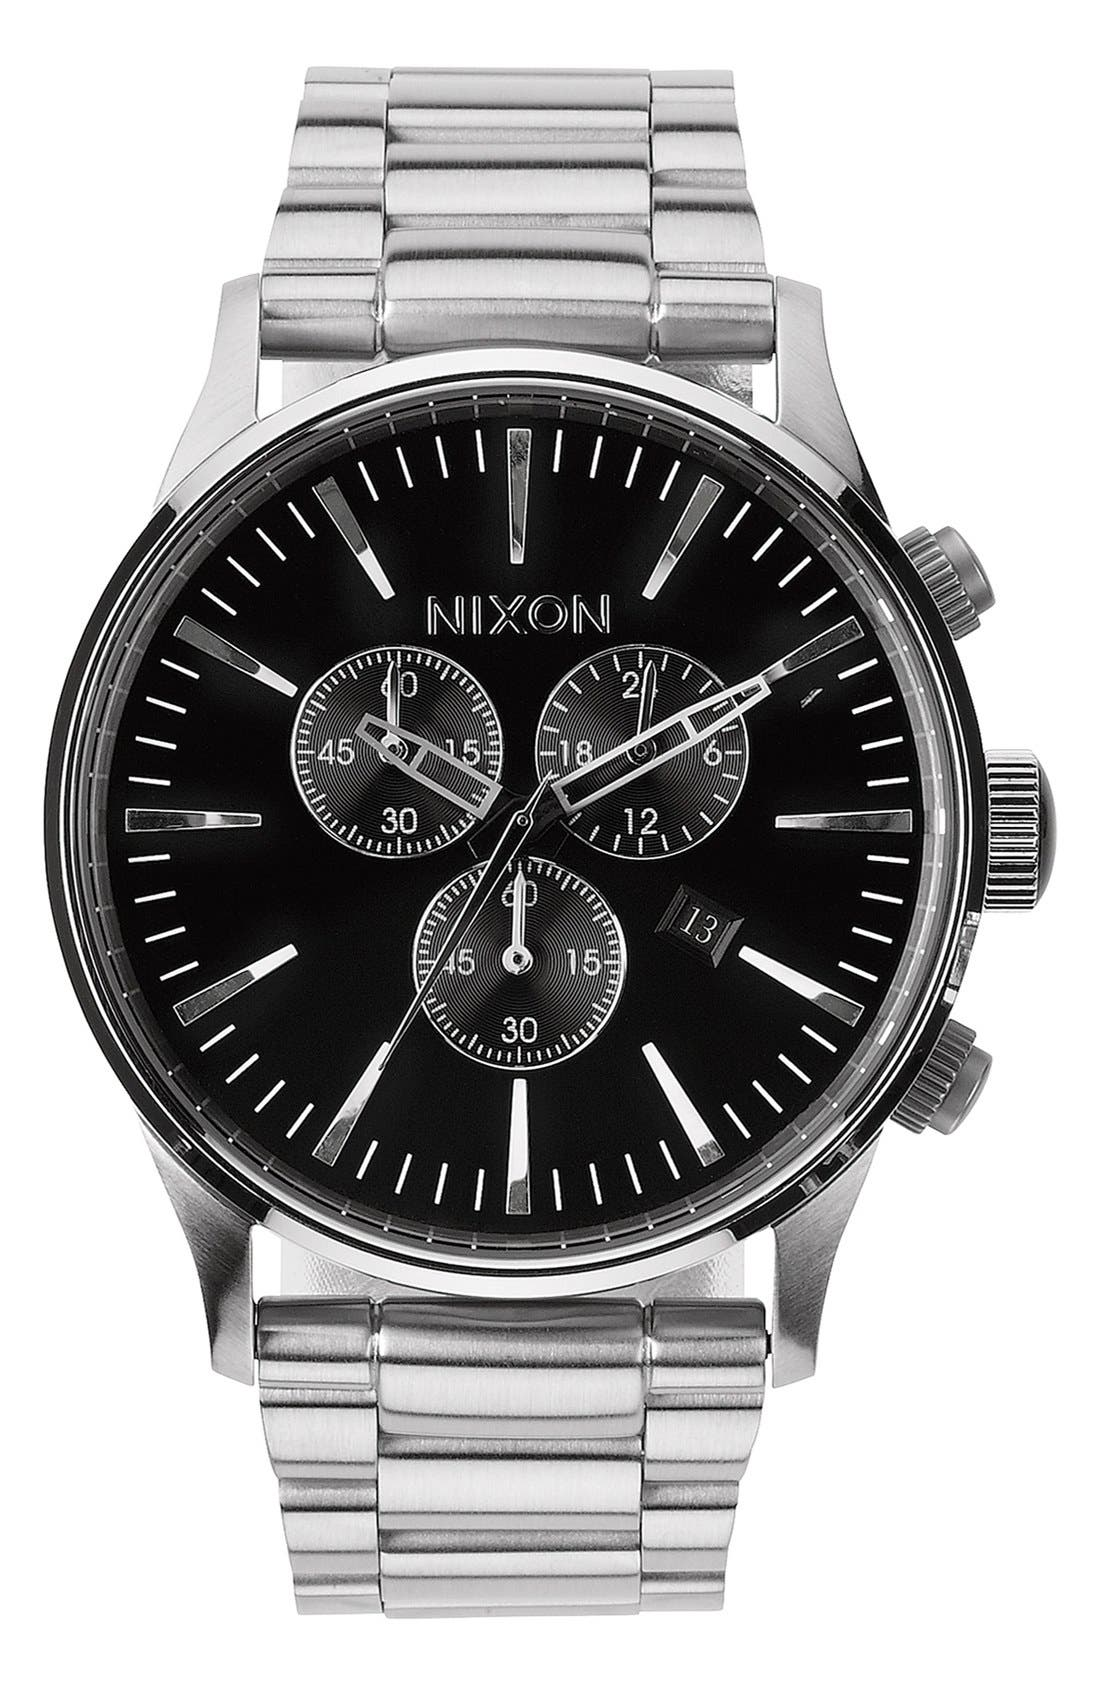 Nixon Bracelets 'THE SENTRY' CHRONOGRAPH BRACELET WATCH, 42MM